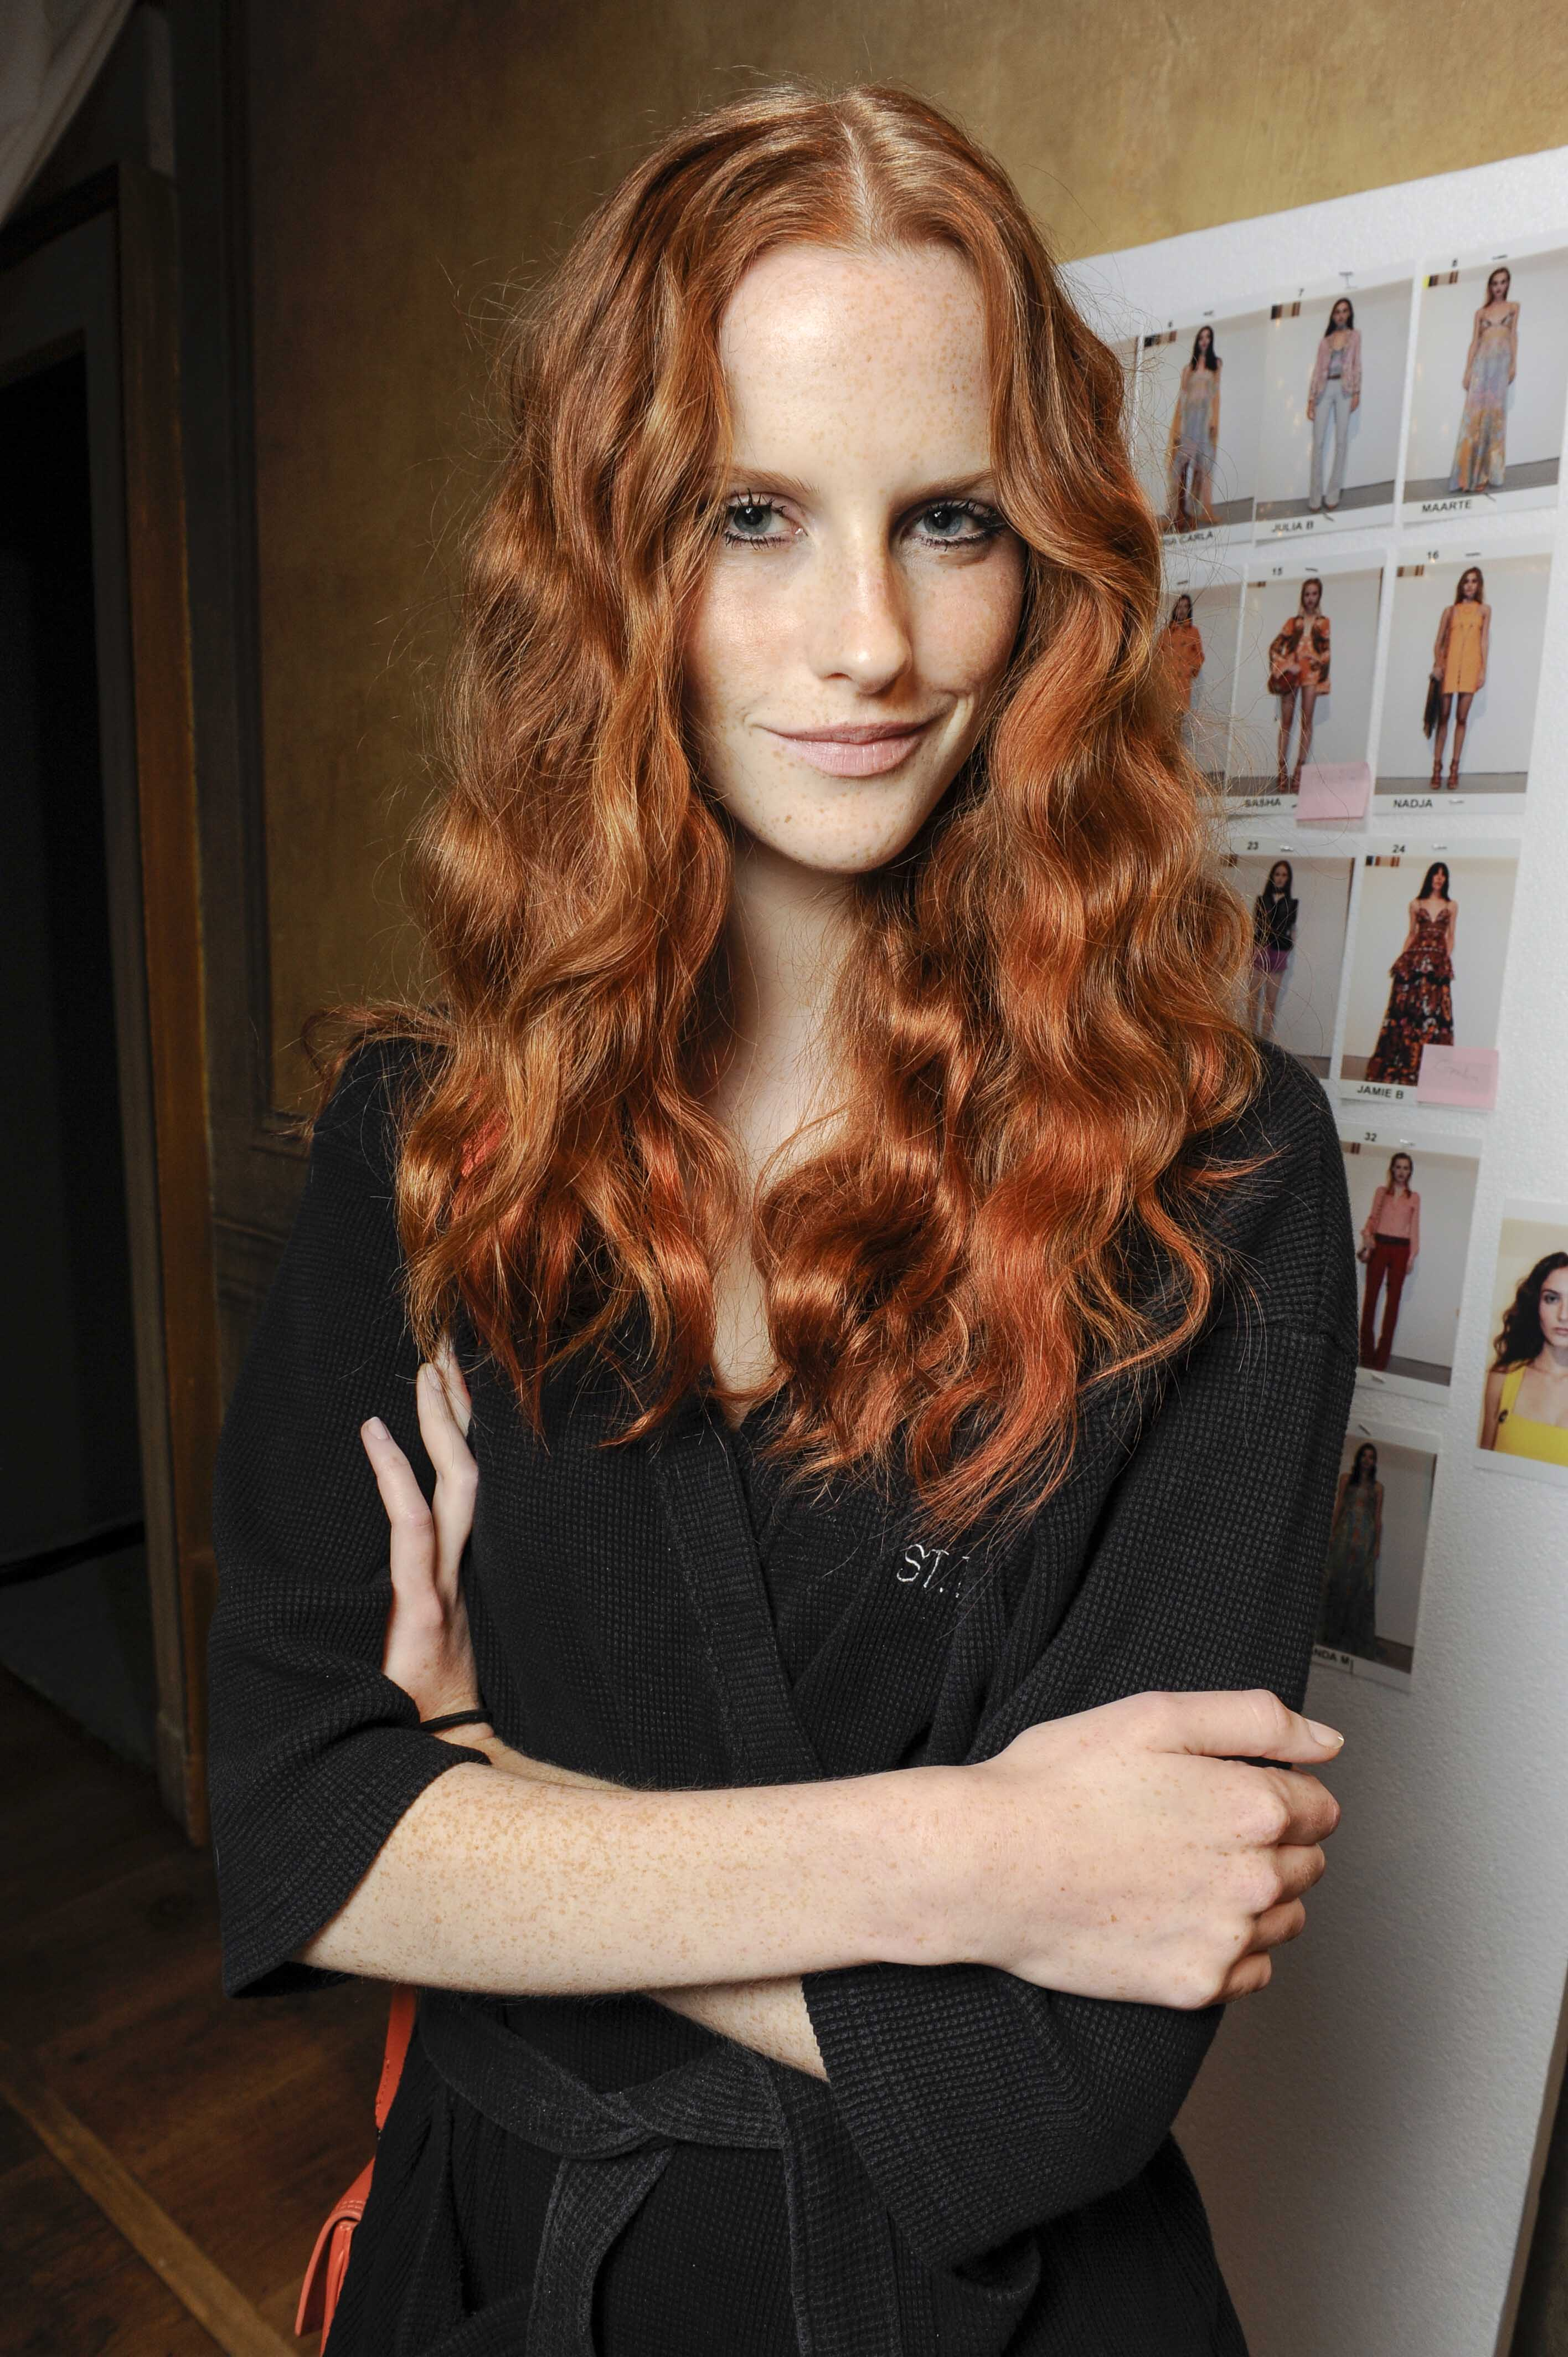 Wavy hair tips Girl with copper curly hair standing backstage with folded arms